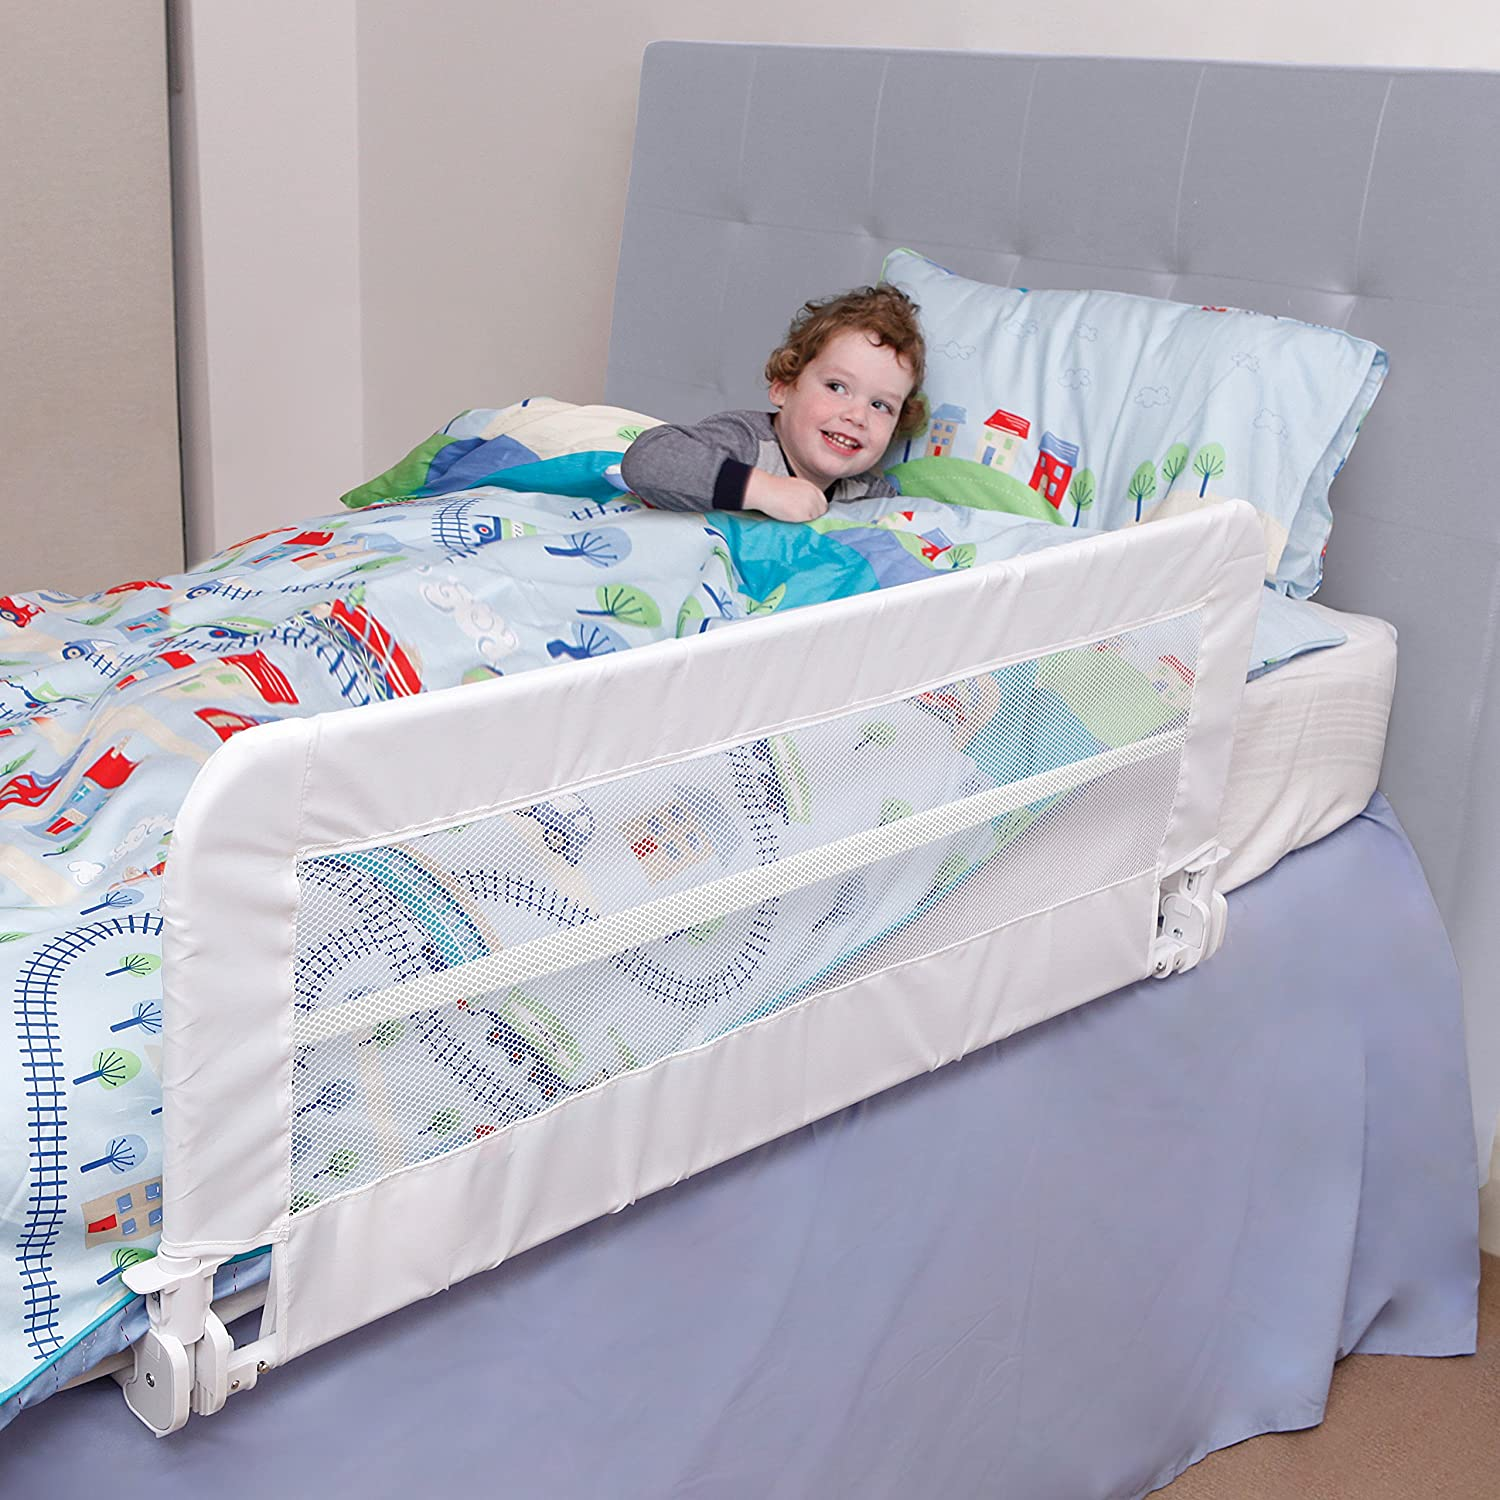 Dreambaby Savoy Bed Rail Perfect for Toddler Beds tee-zed L720